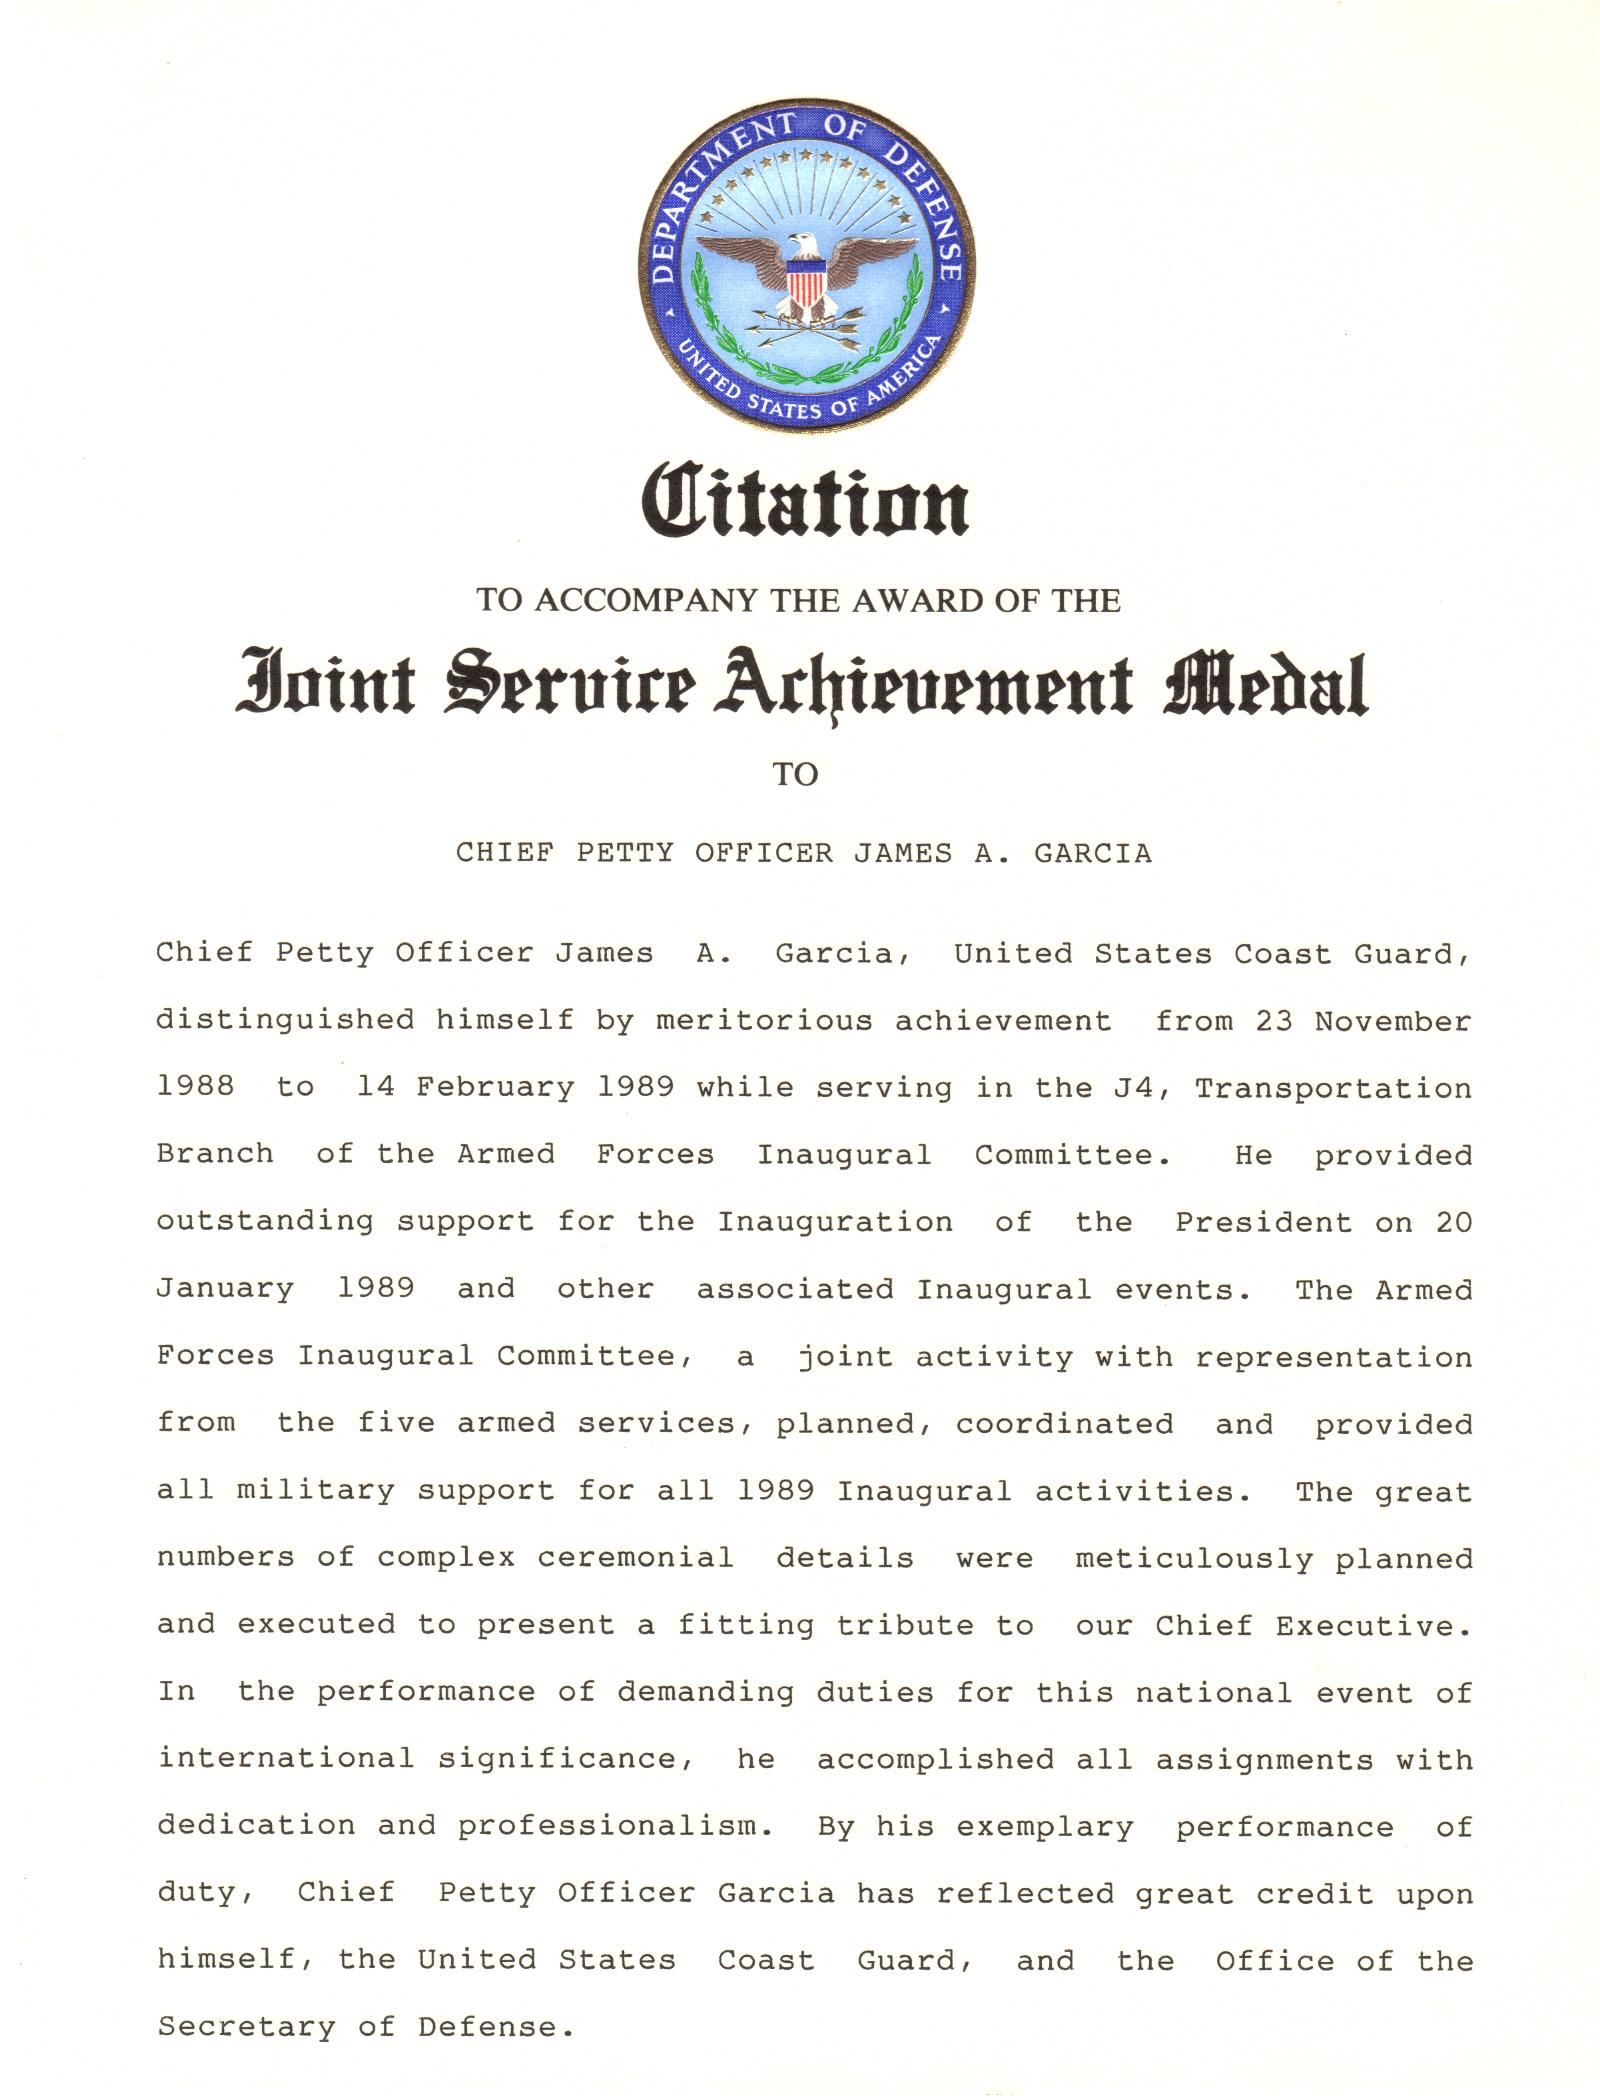 Joint Service Achievment Medal Citation